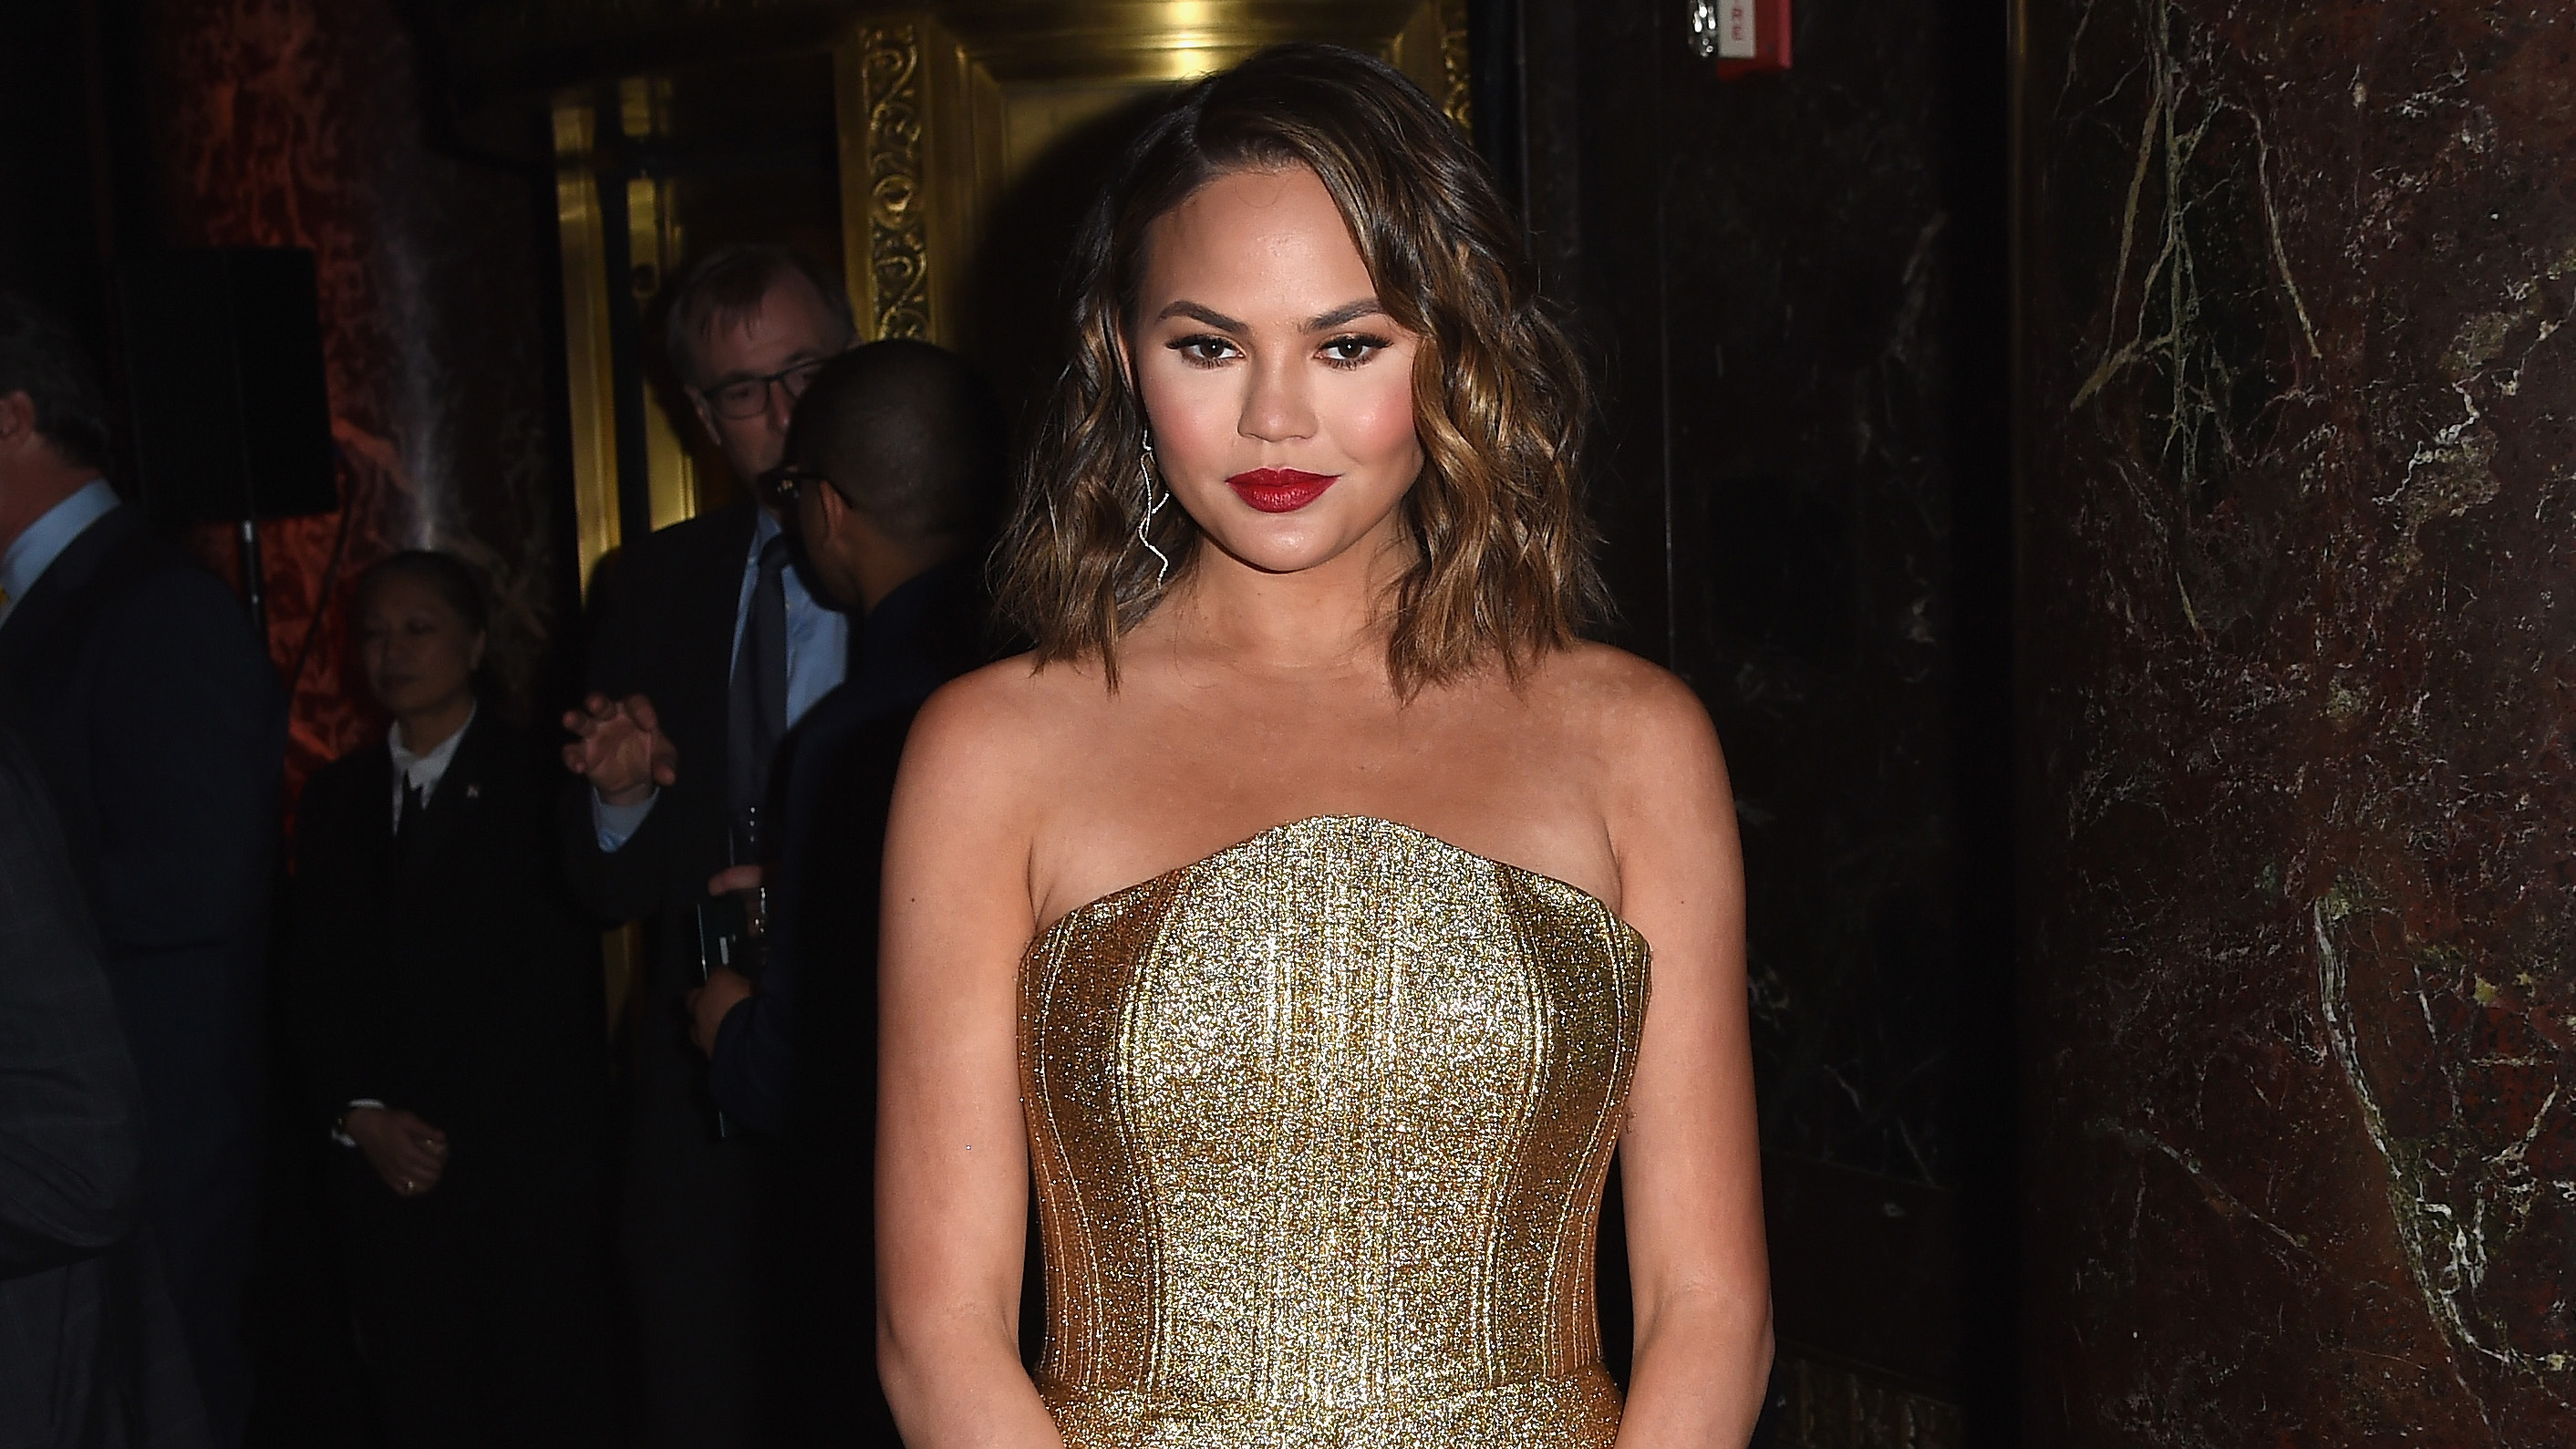 6e06bd236d06b Chrissy Teigen Slams Baby Bump Speculation in the Most Elegant Way: 'Think  Twice'